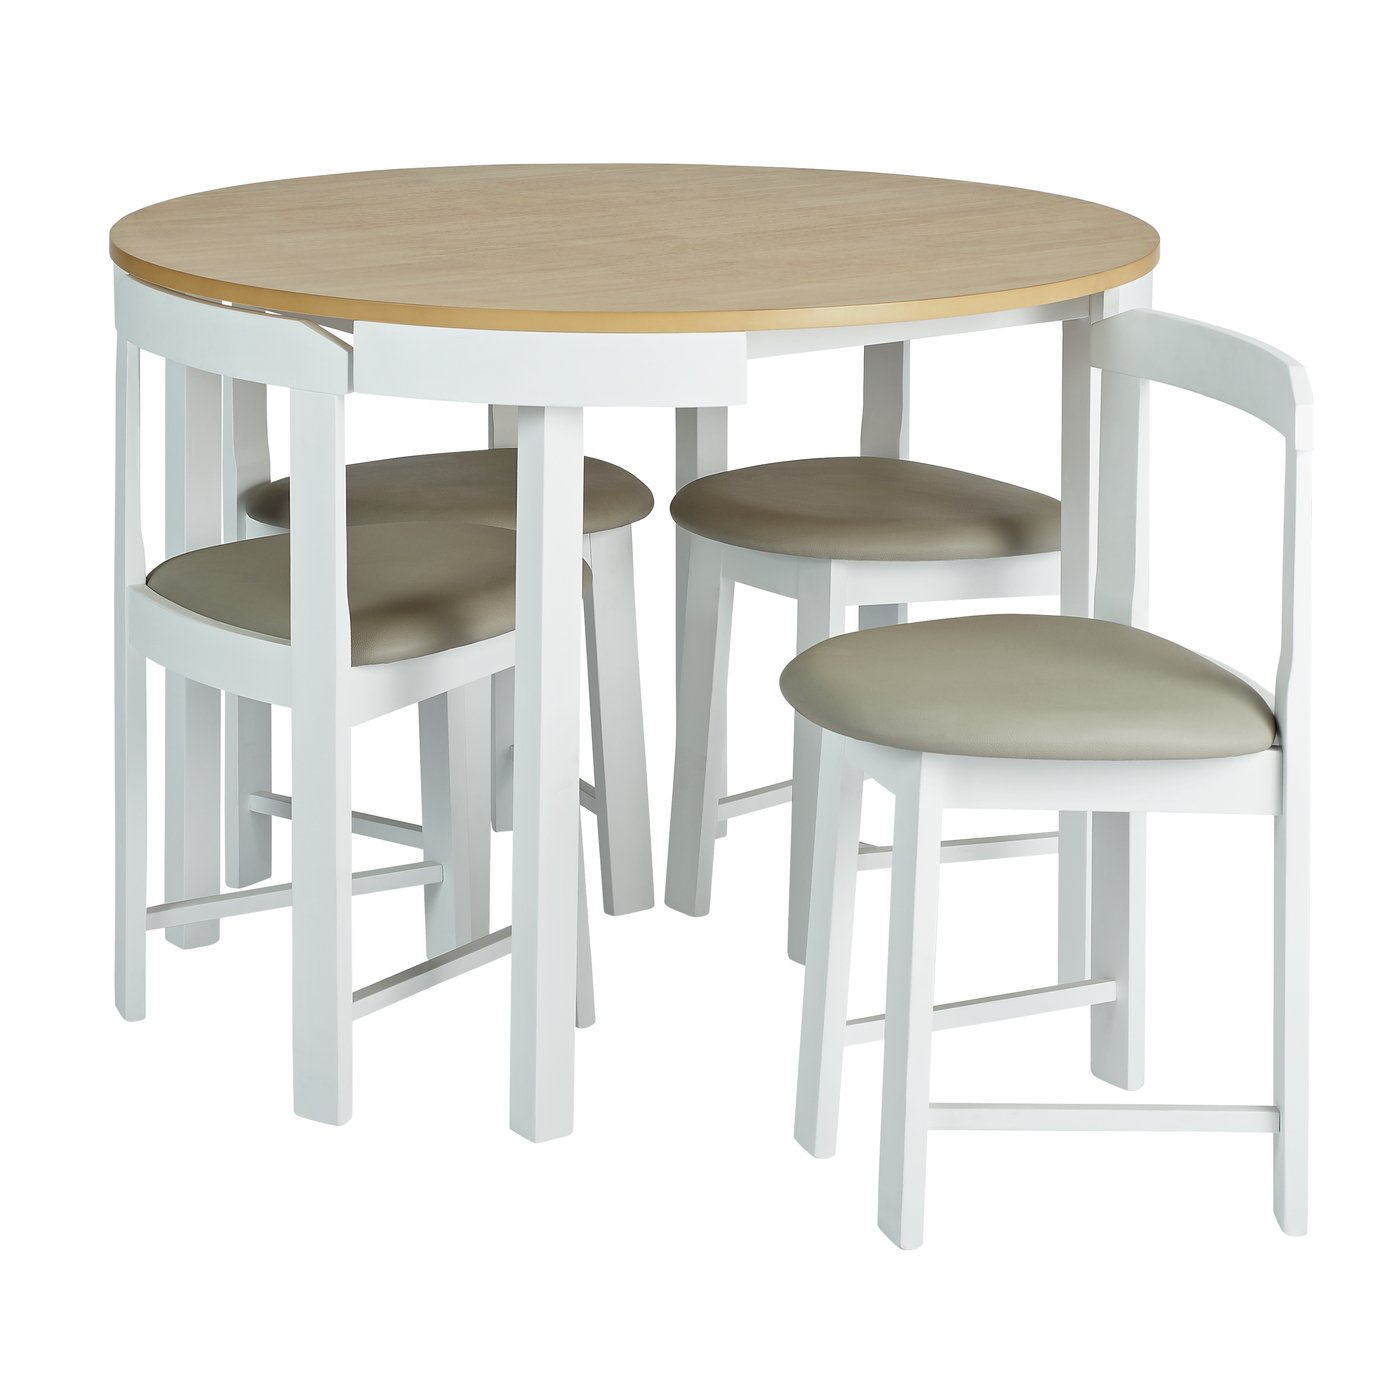 Exceptionnel Buy Argos Home Alena Solid Wood Table U0026 4 Two Tone Chairs | Space Saving  Dining Sets | Argos